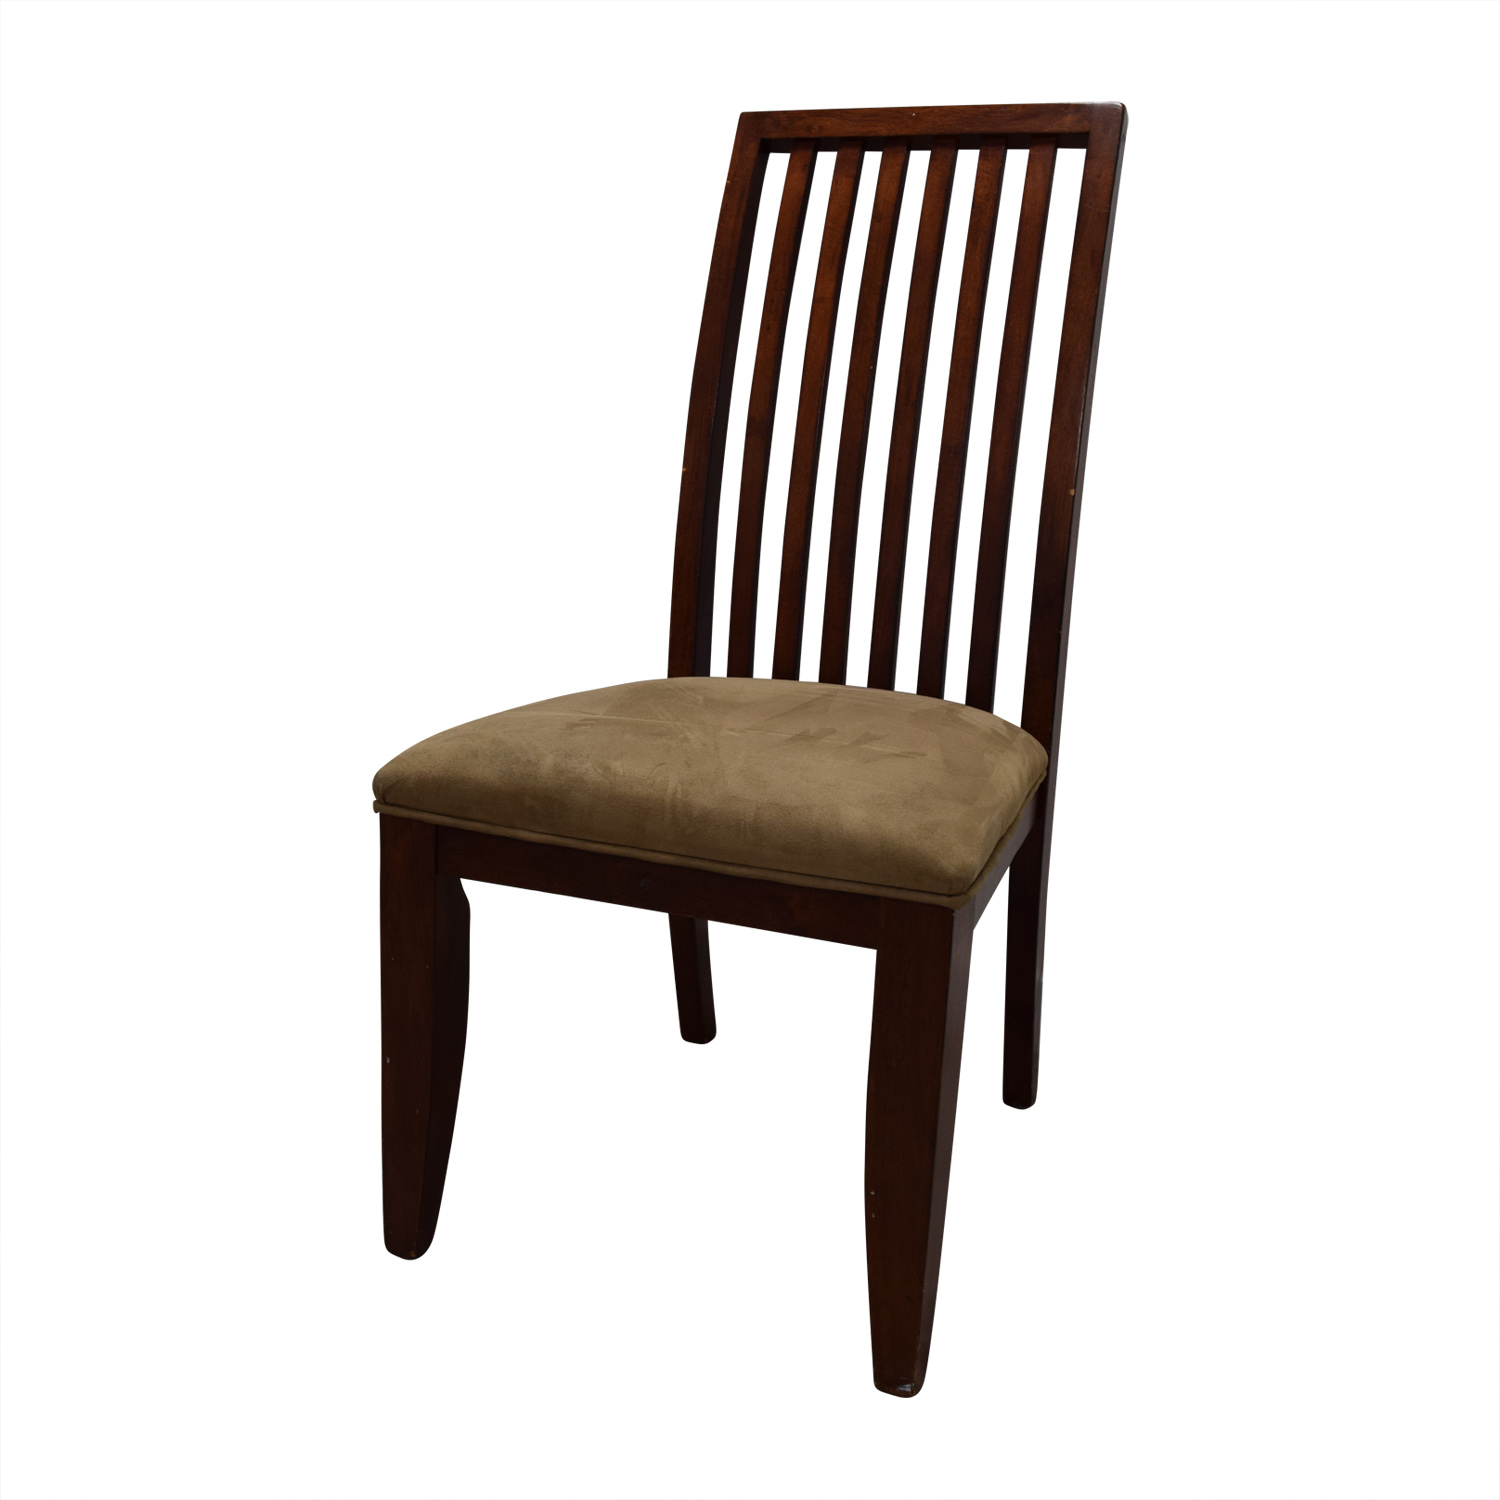 macys dining chairs true seating concepts chair 74 off macy 39s wood set with extendable